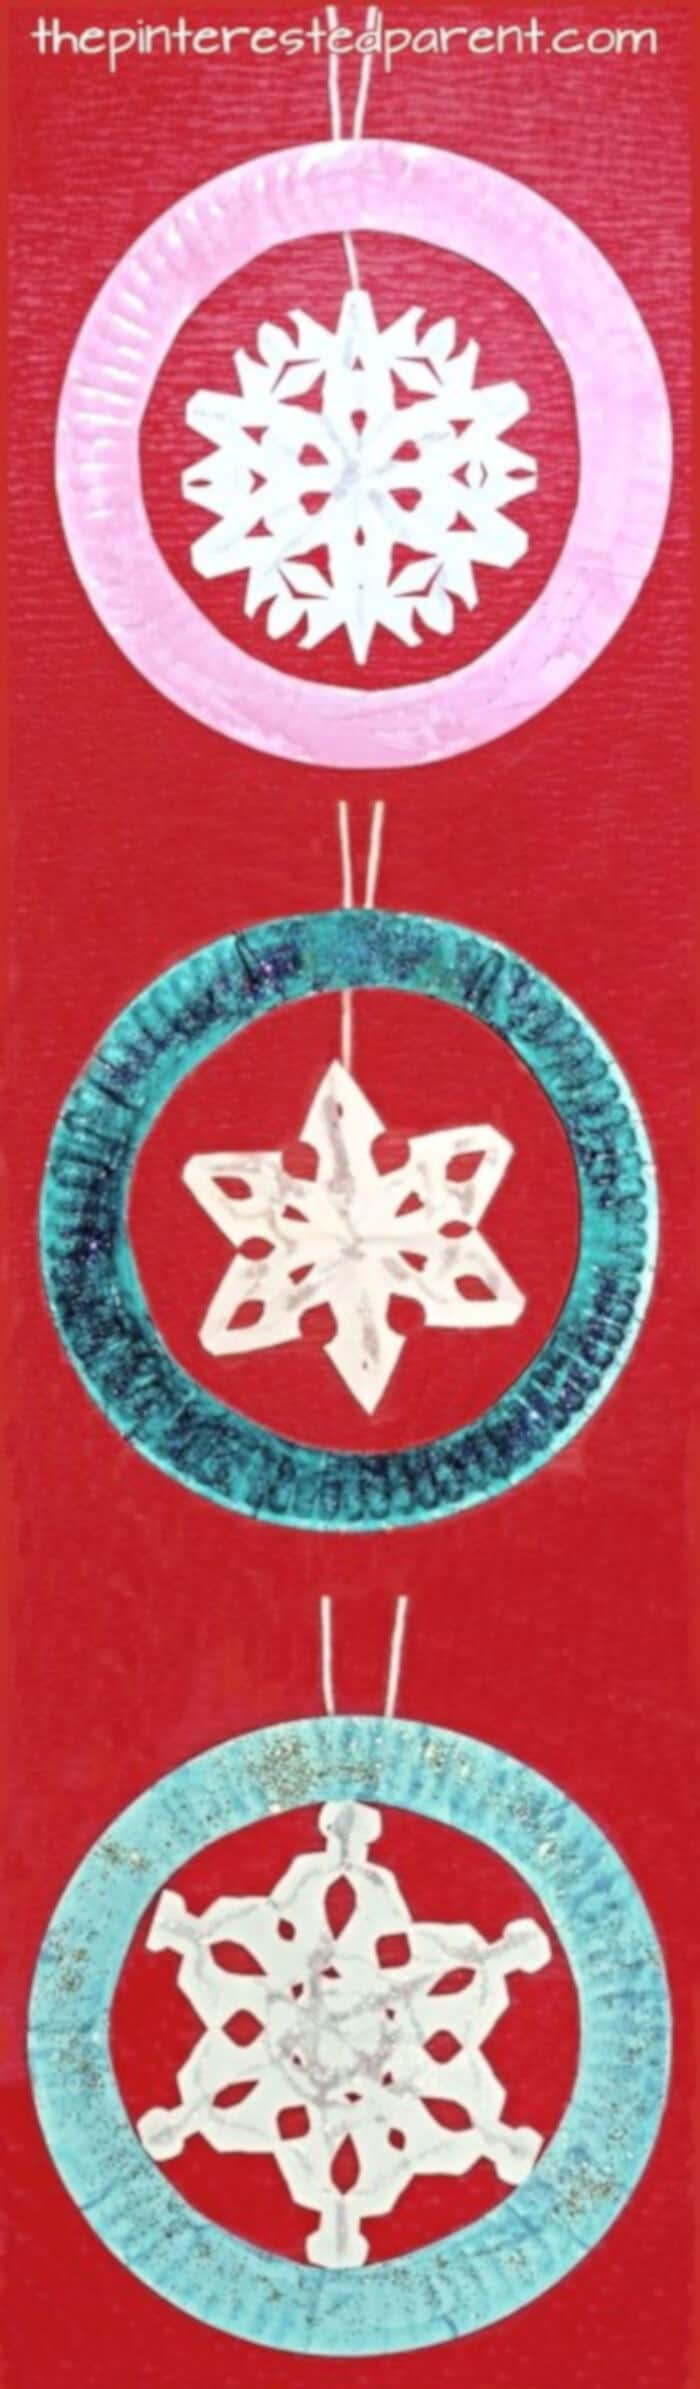 Snowflake-Crafts-For-Kids-by-The-Pinterested-Parent